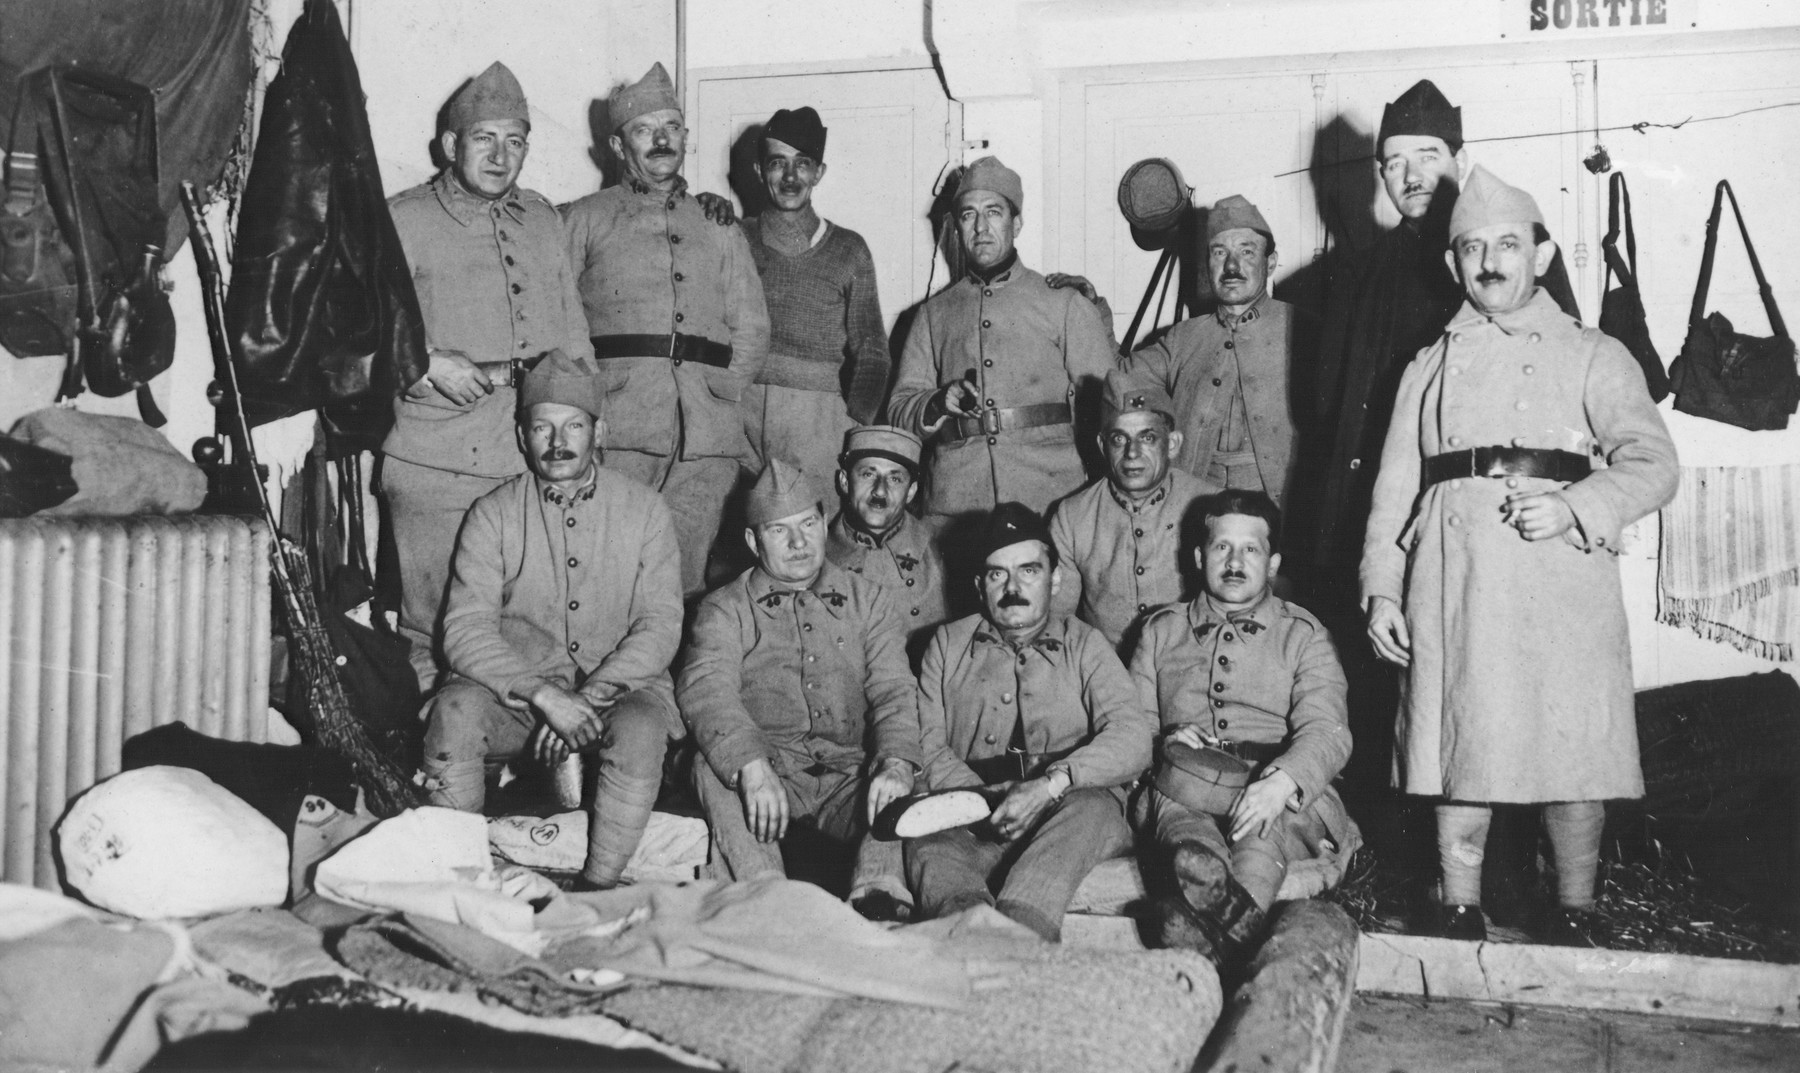 A French army brigade poses inside its barracks.  Pictured in the second row, center is Mr. Frenkel.